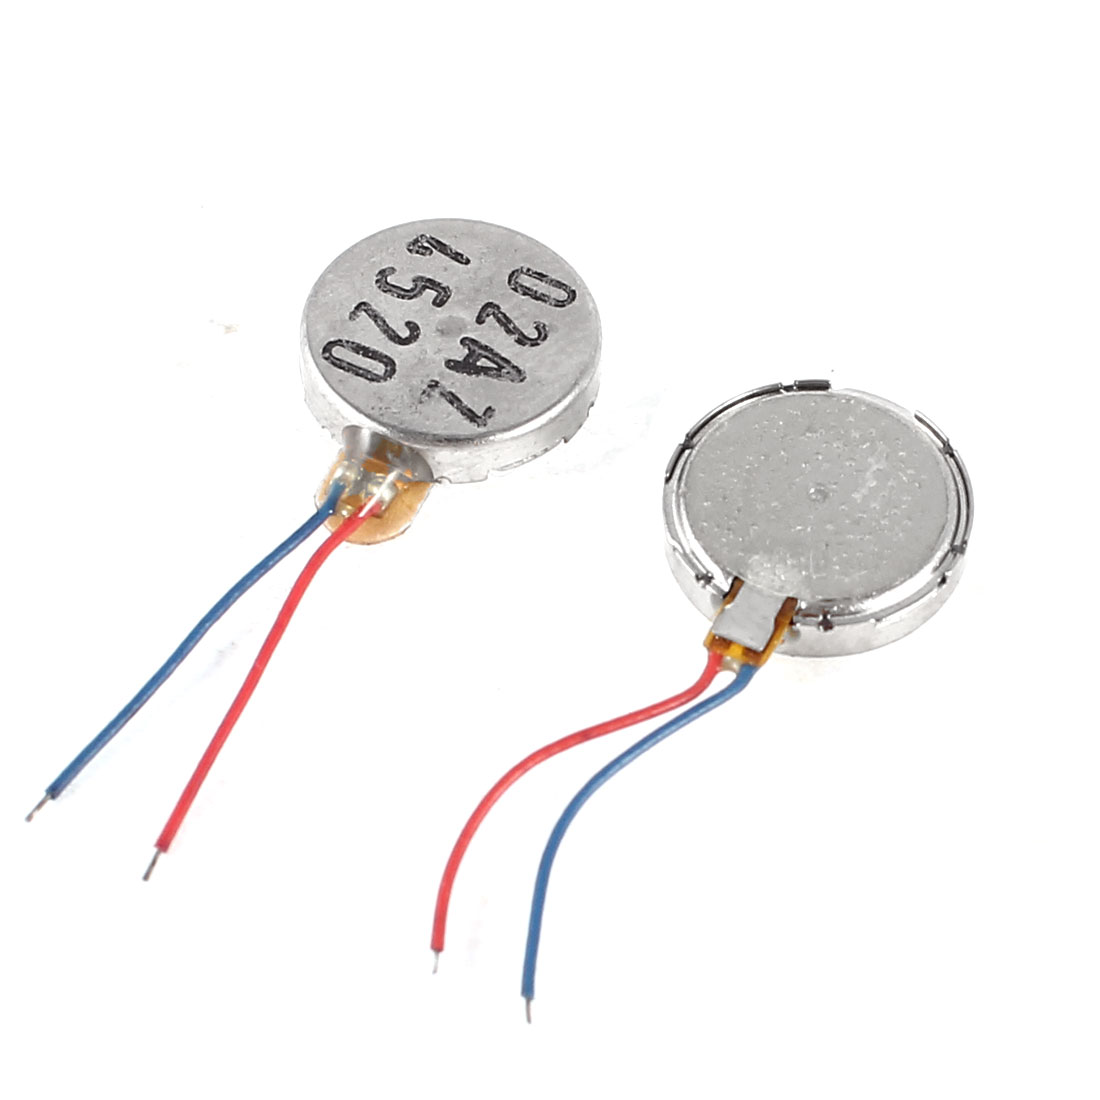 12mm-x-3mm-Cellphone-Playing-Toy-Vibration-DC-Micro-Motor-3V-2-Pcs